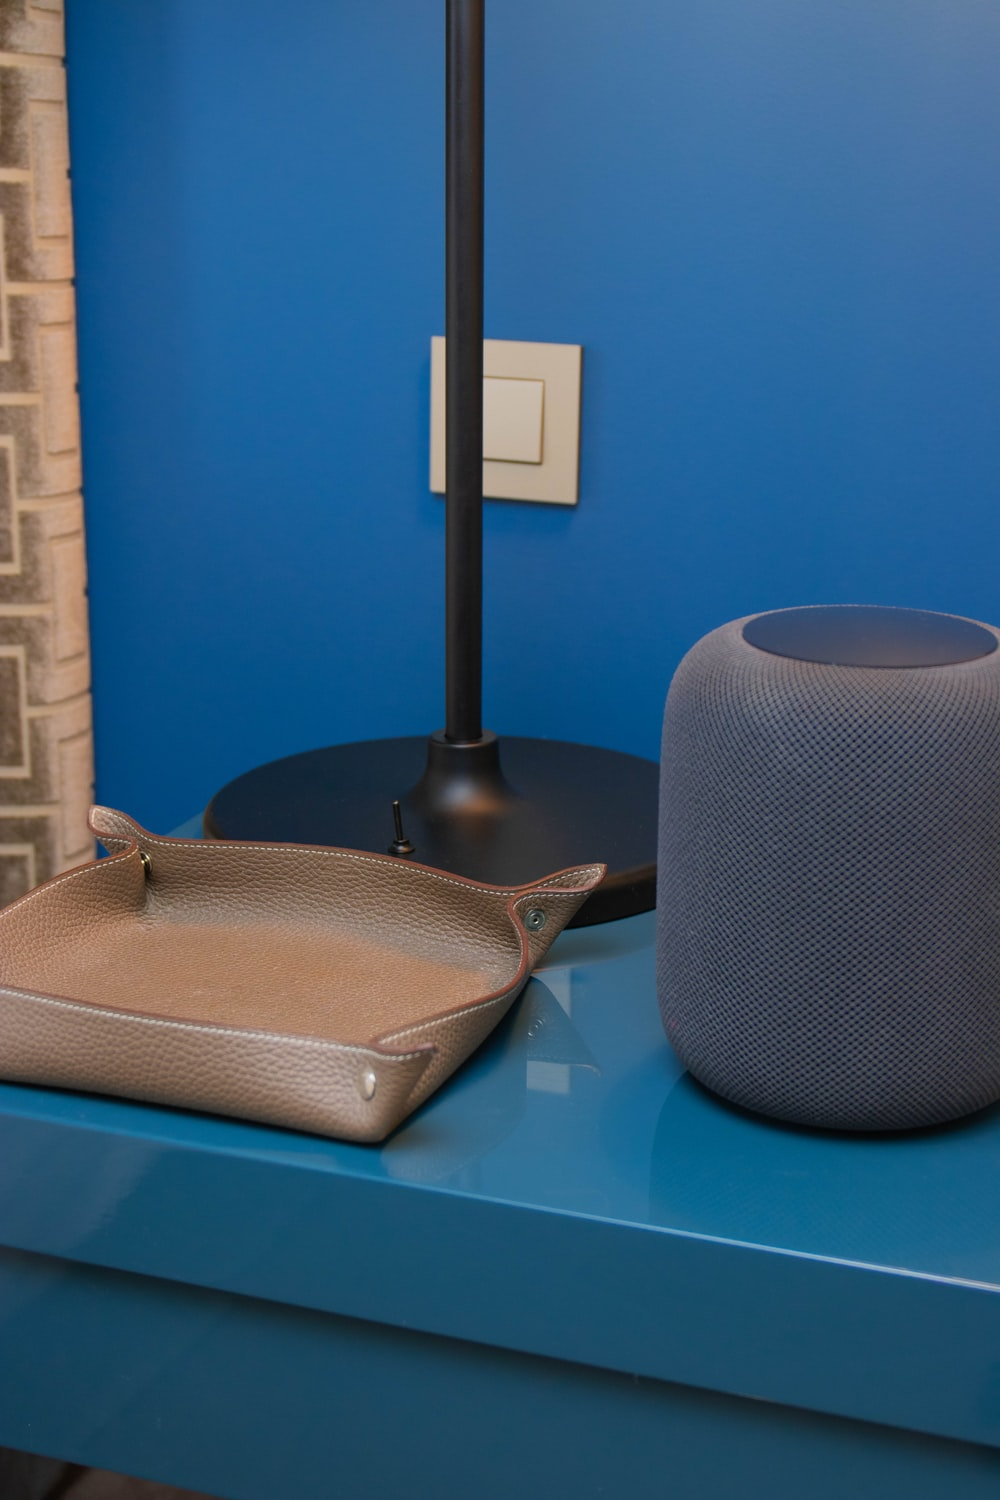 brown leather tray beside gray portable speaker and black table lamp base